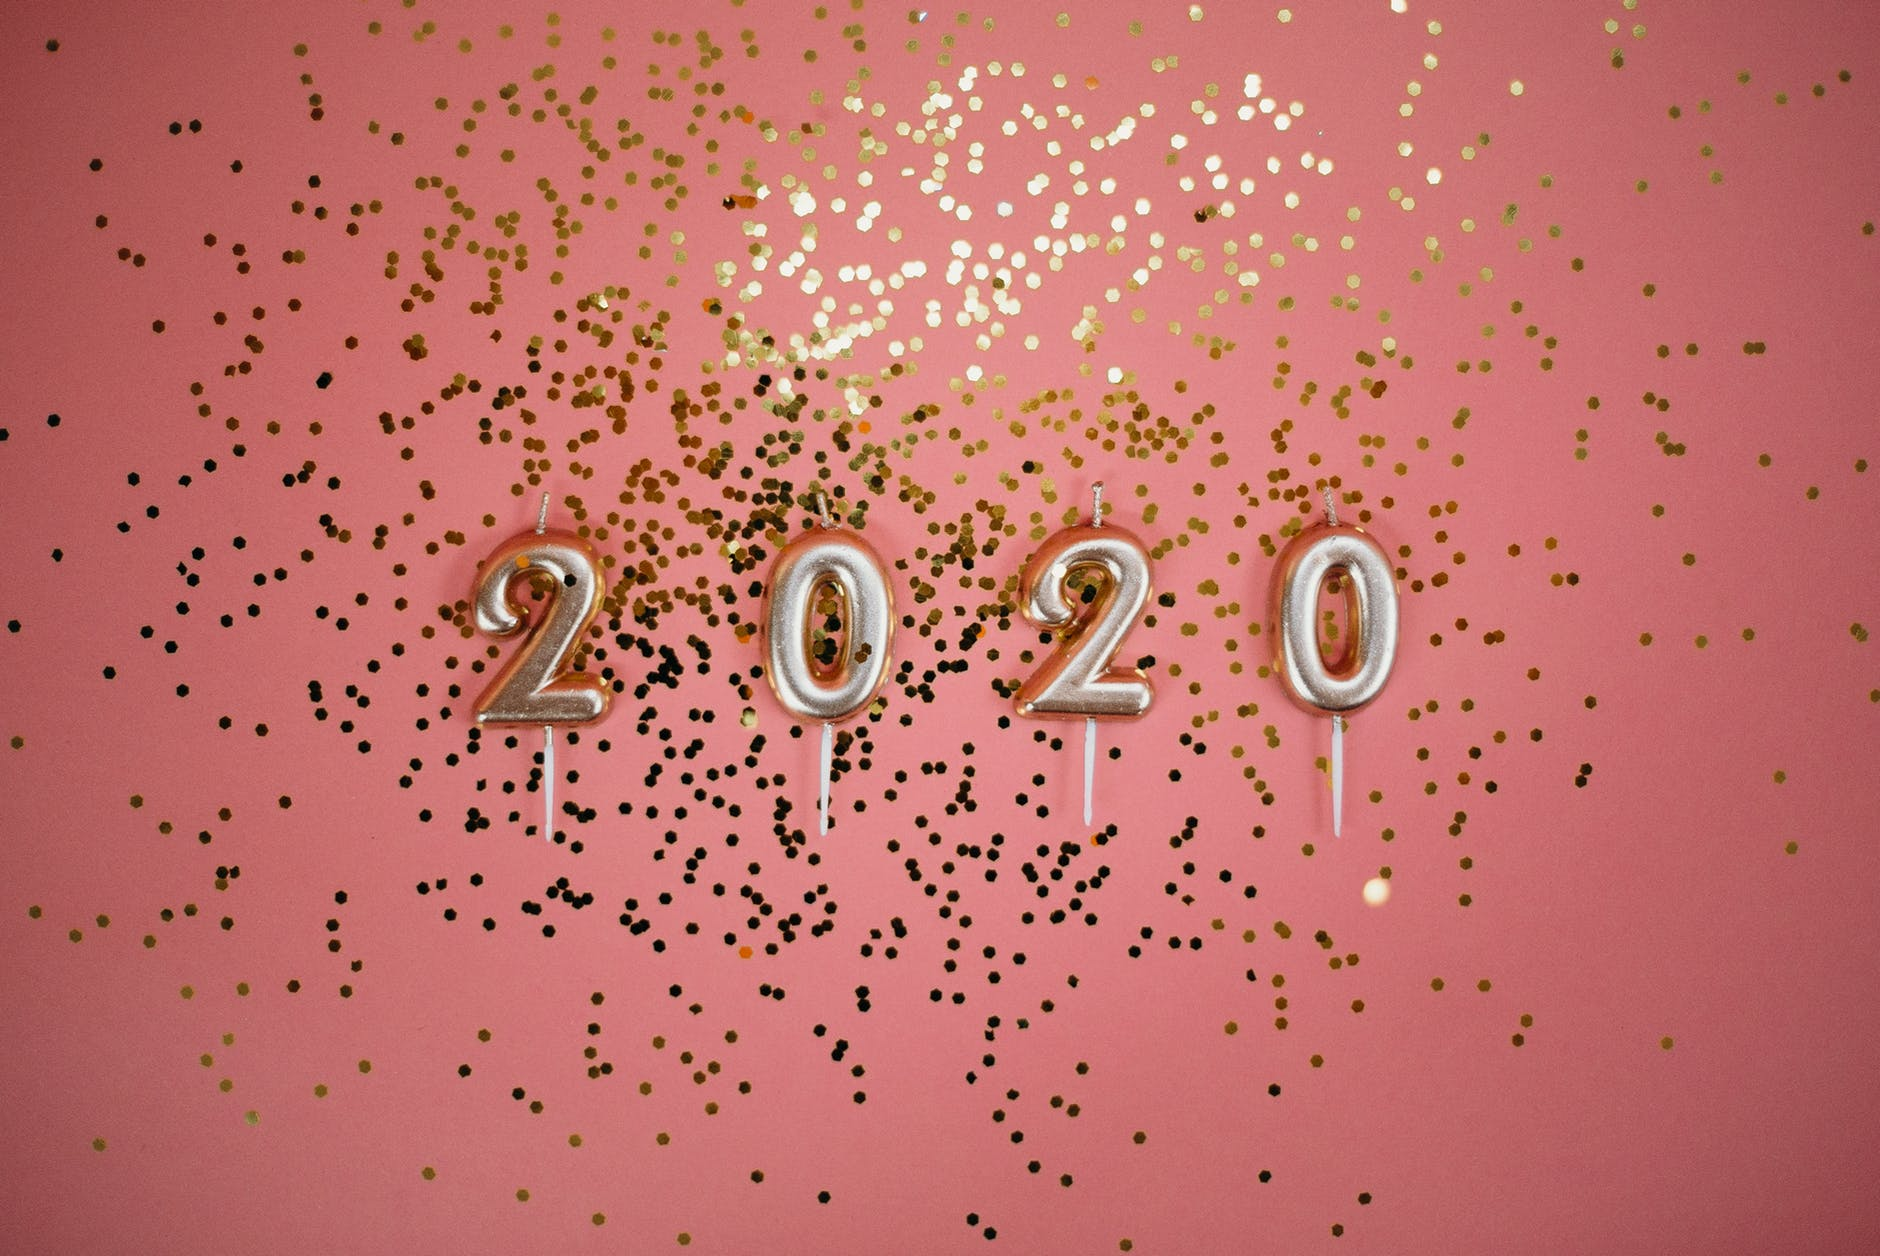 Happy New Year 2020 Images HD Wallpapers 1880x1256